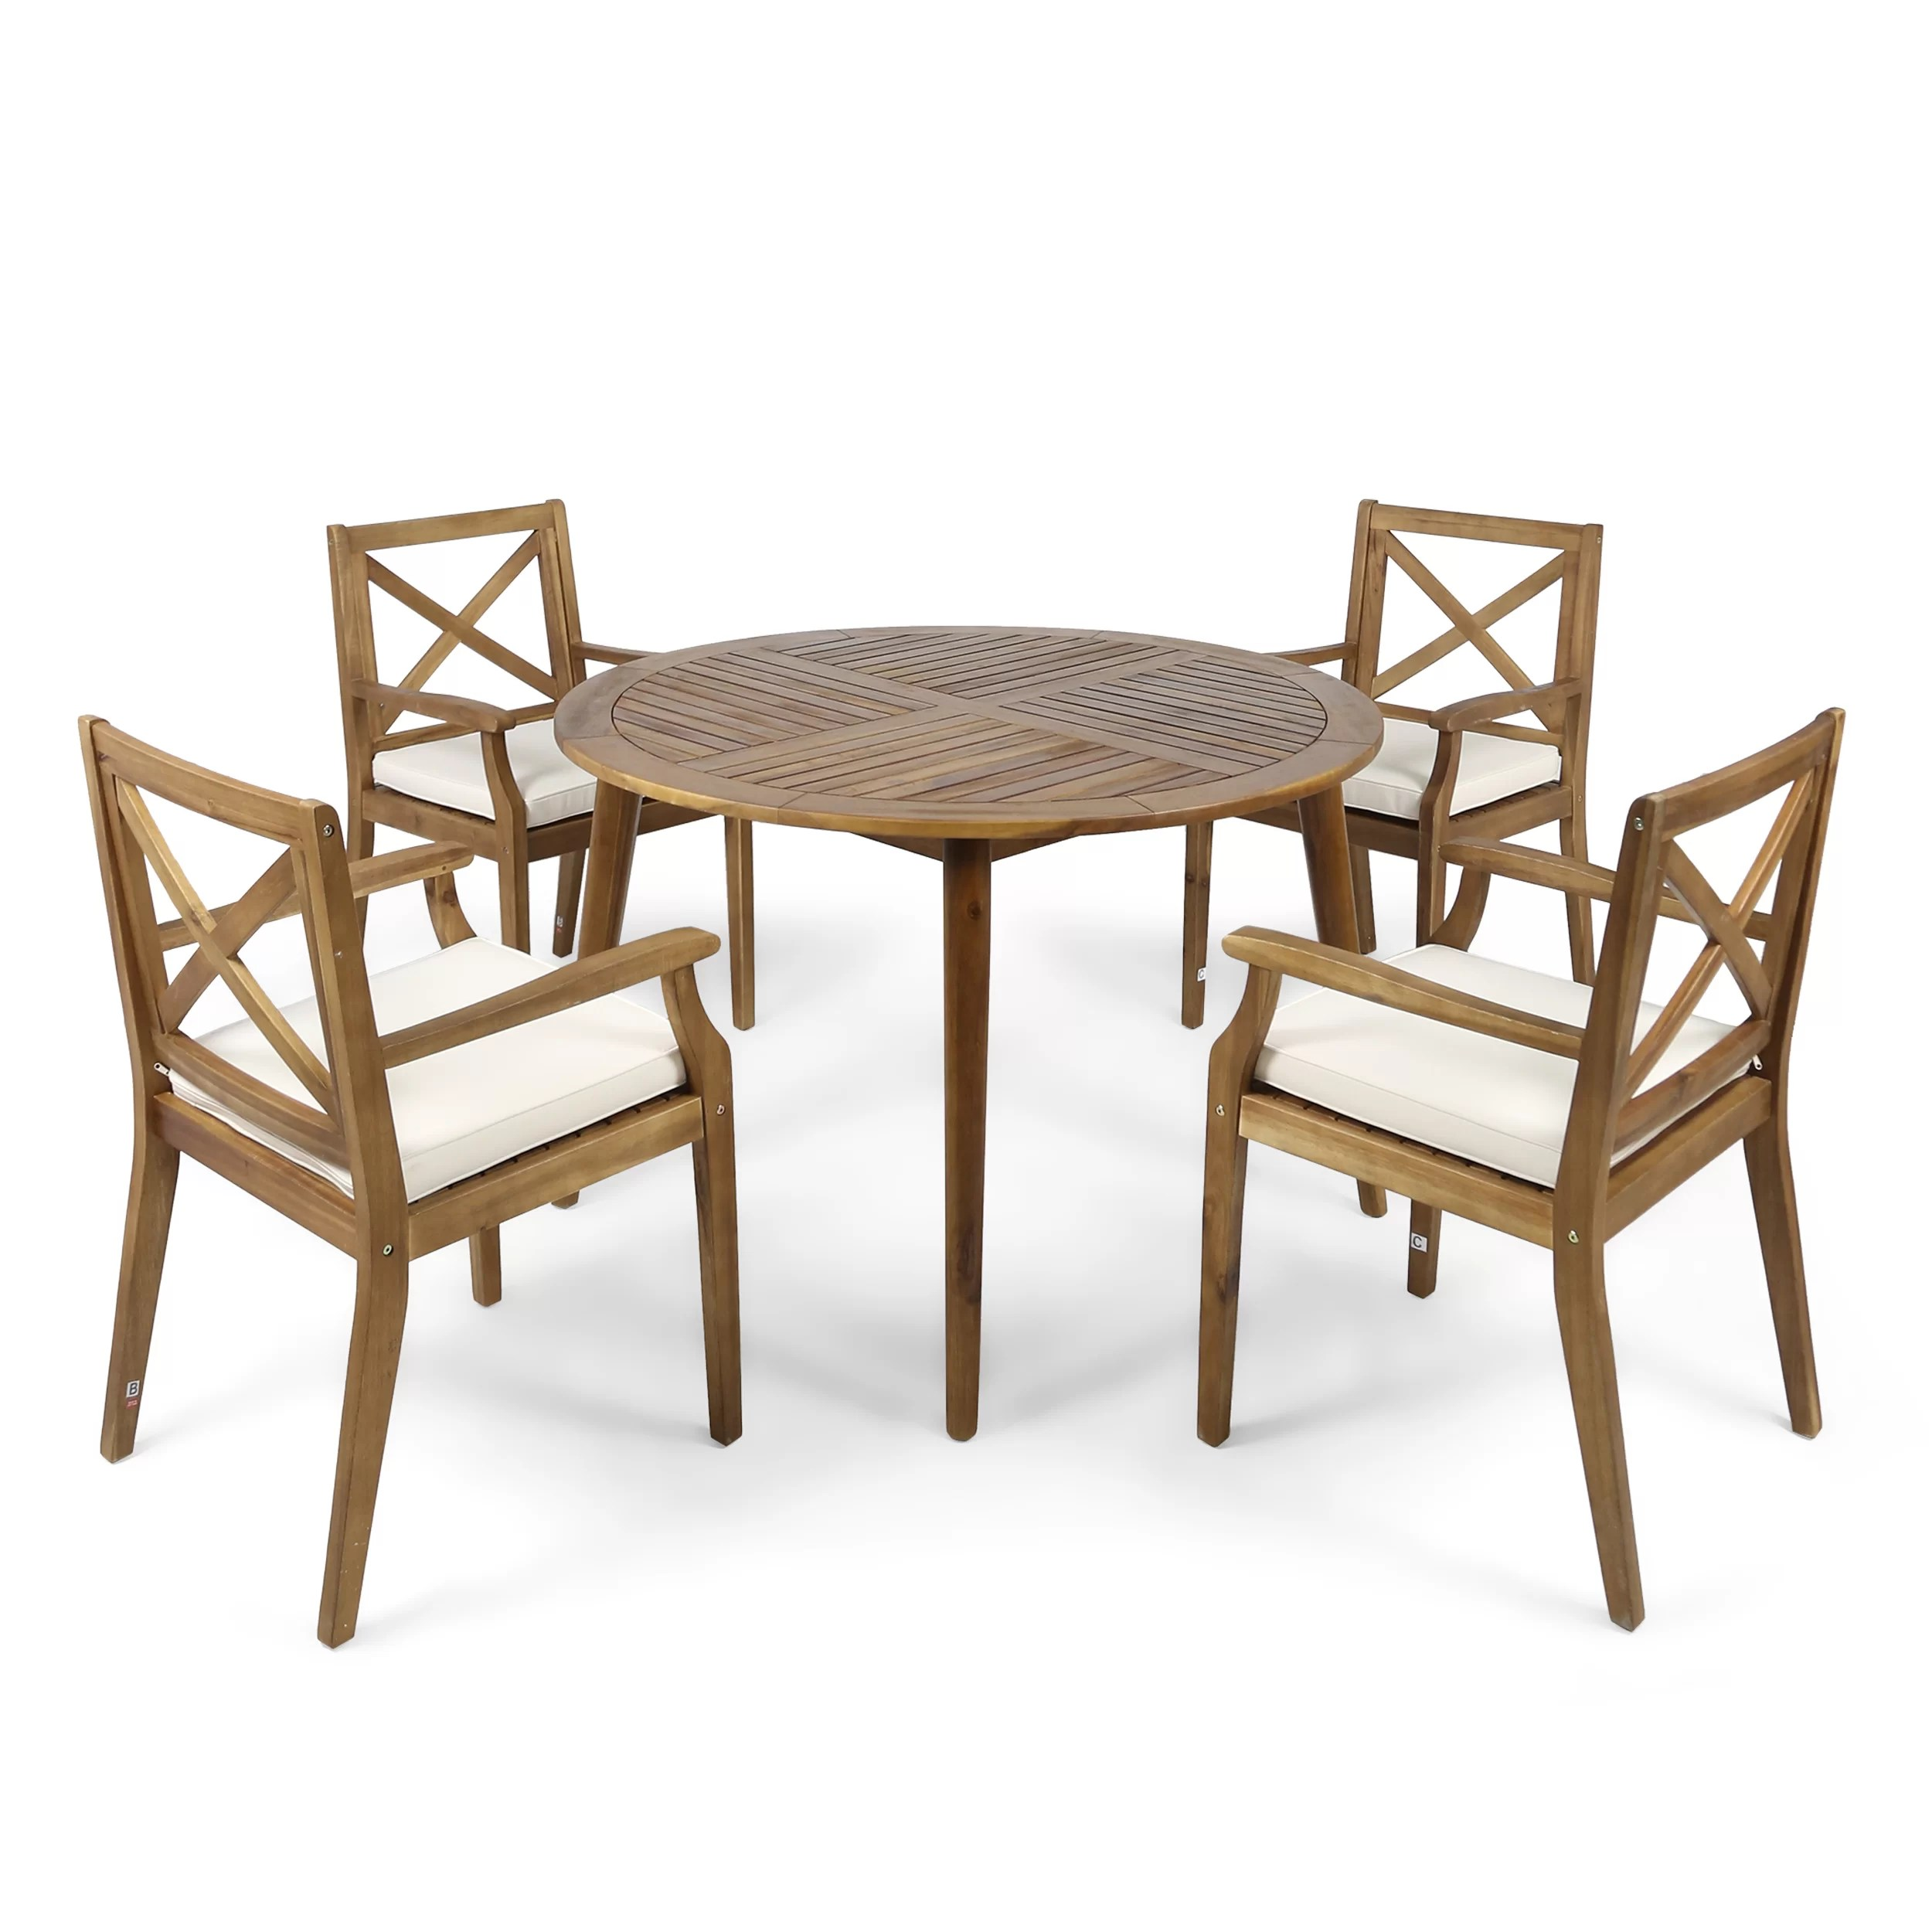 Teak Dining Room Chairs Geneva 5 Piece Teak Dining Set With Cushions